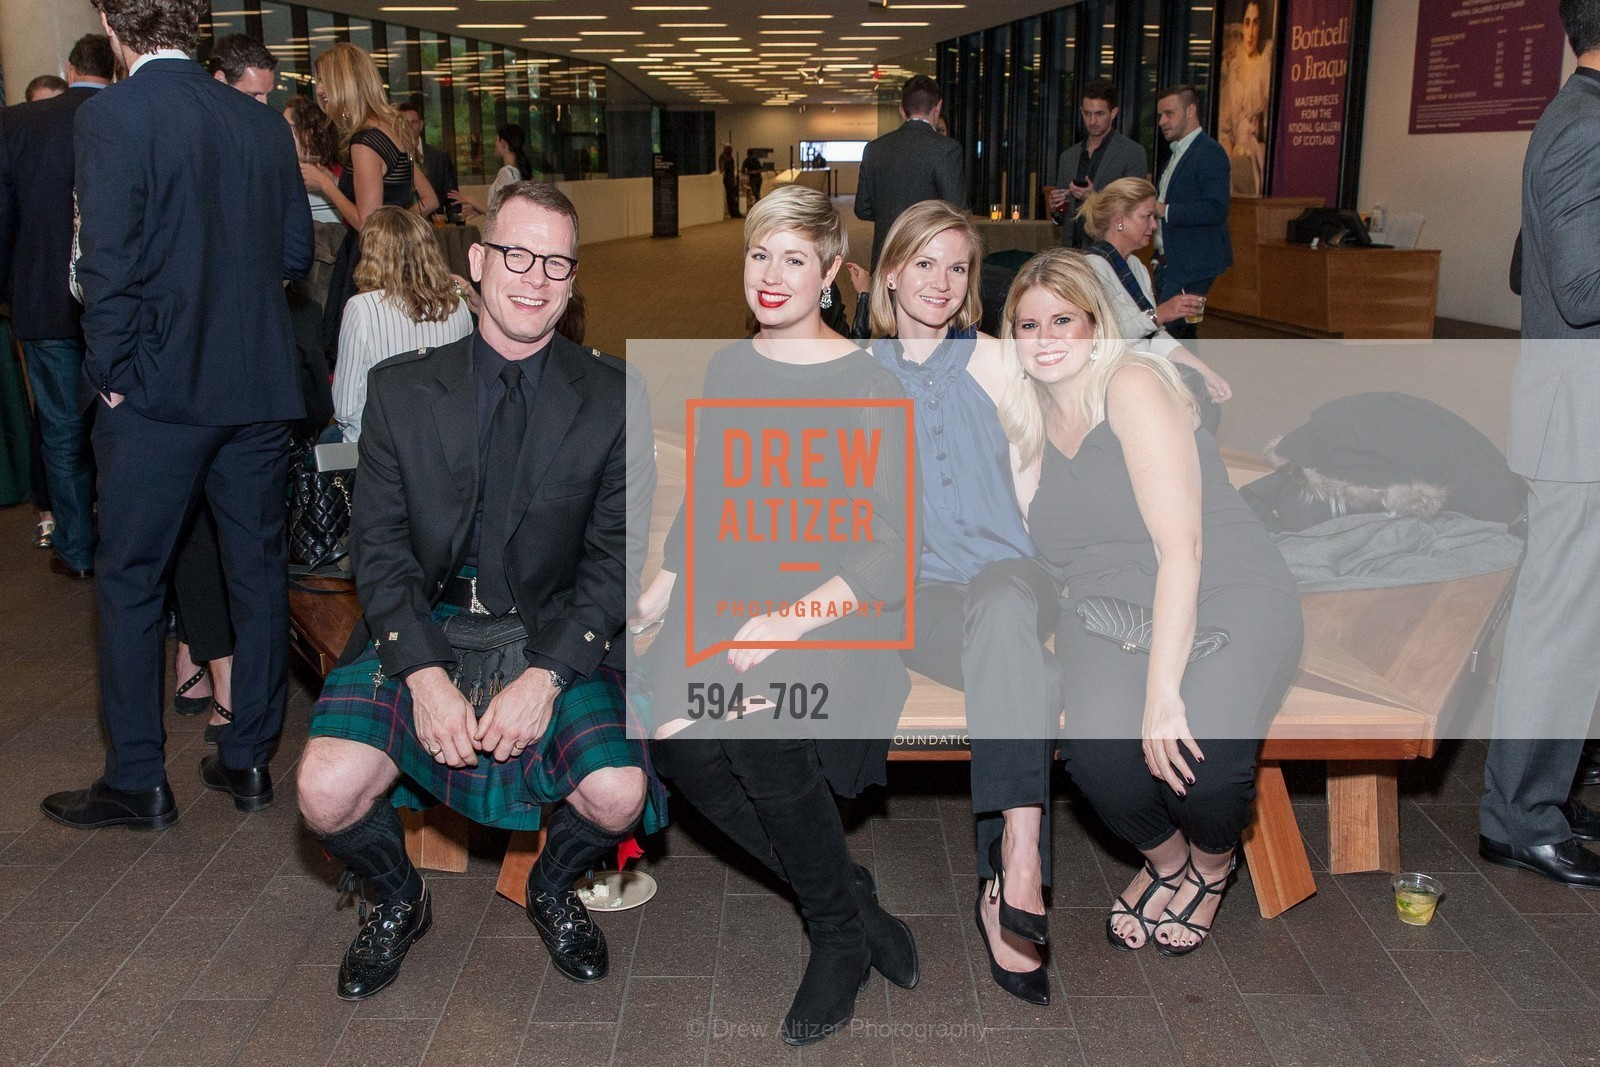 Greer Goings, Julie Yarbrough, ARTPOINT:  Masterpieces from the National Galleries of Scotland and Scotch Tastings, US, May 8th, 2015,Drew Altizer, Drew Altizer Photography, full-service agency, private events, San Francisco photographer, photographer california